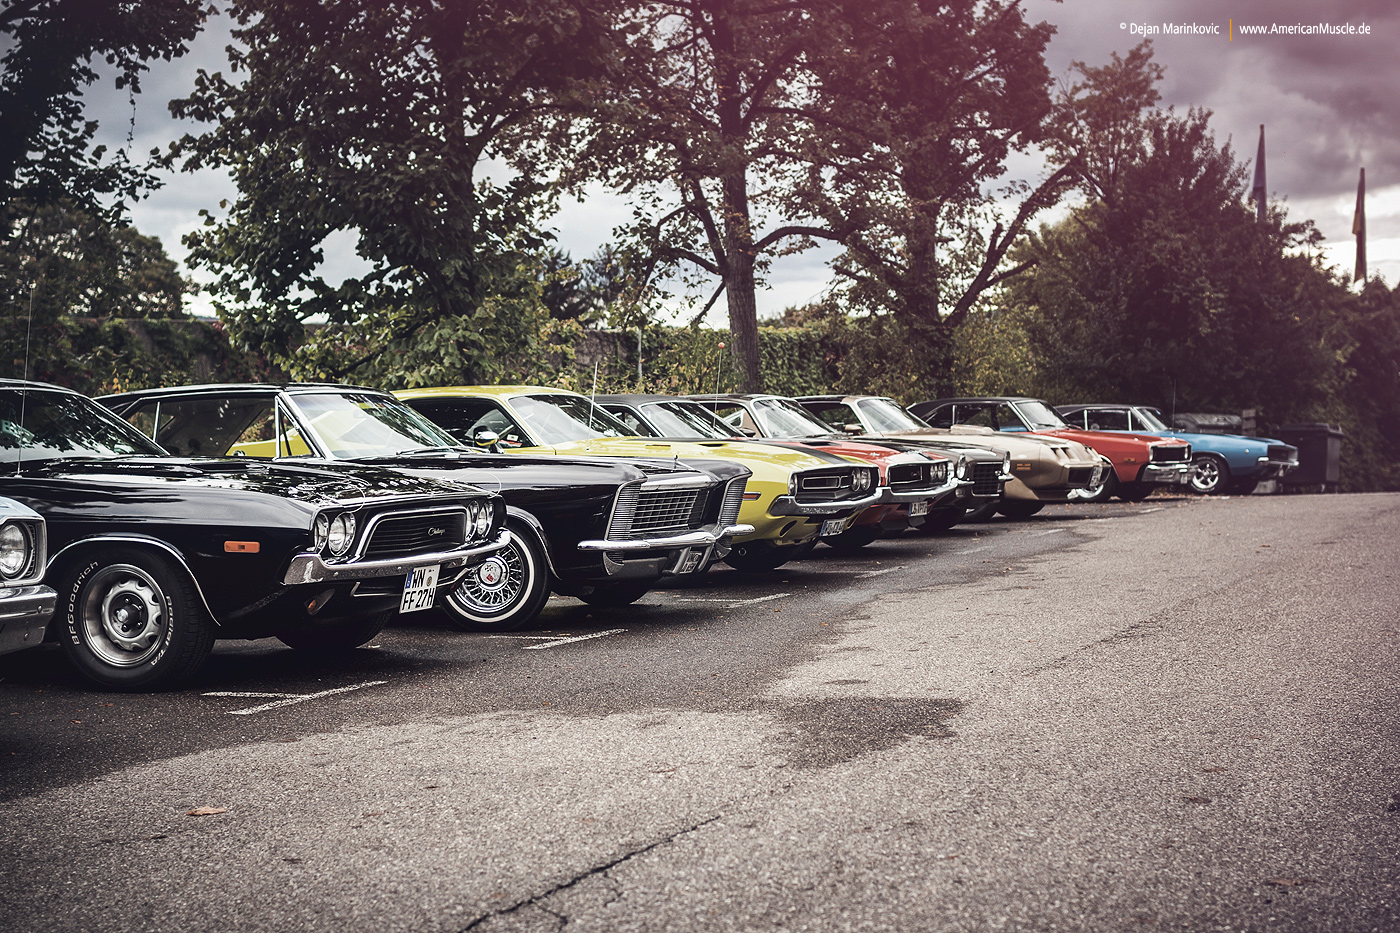 American Classic Cars by AmericanMuscle on DeviantArt